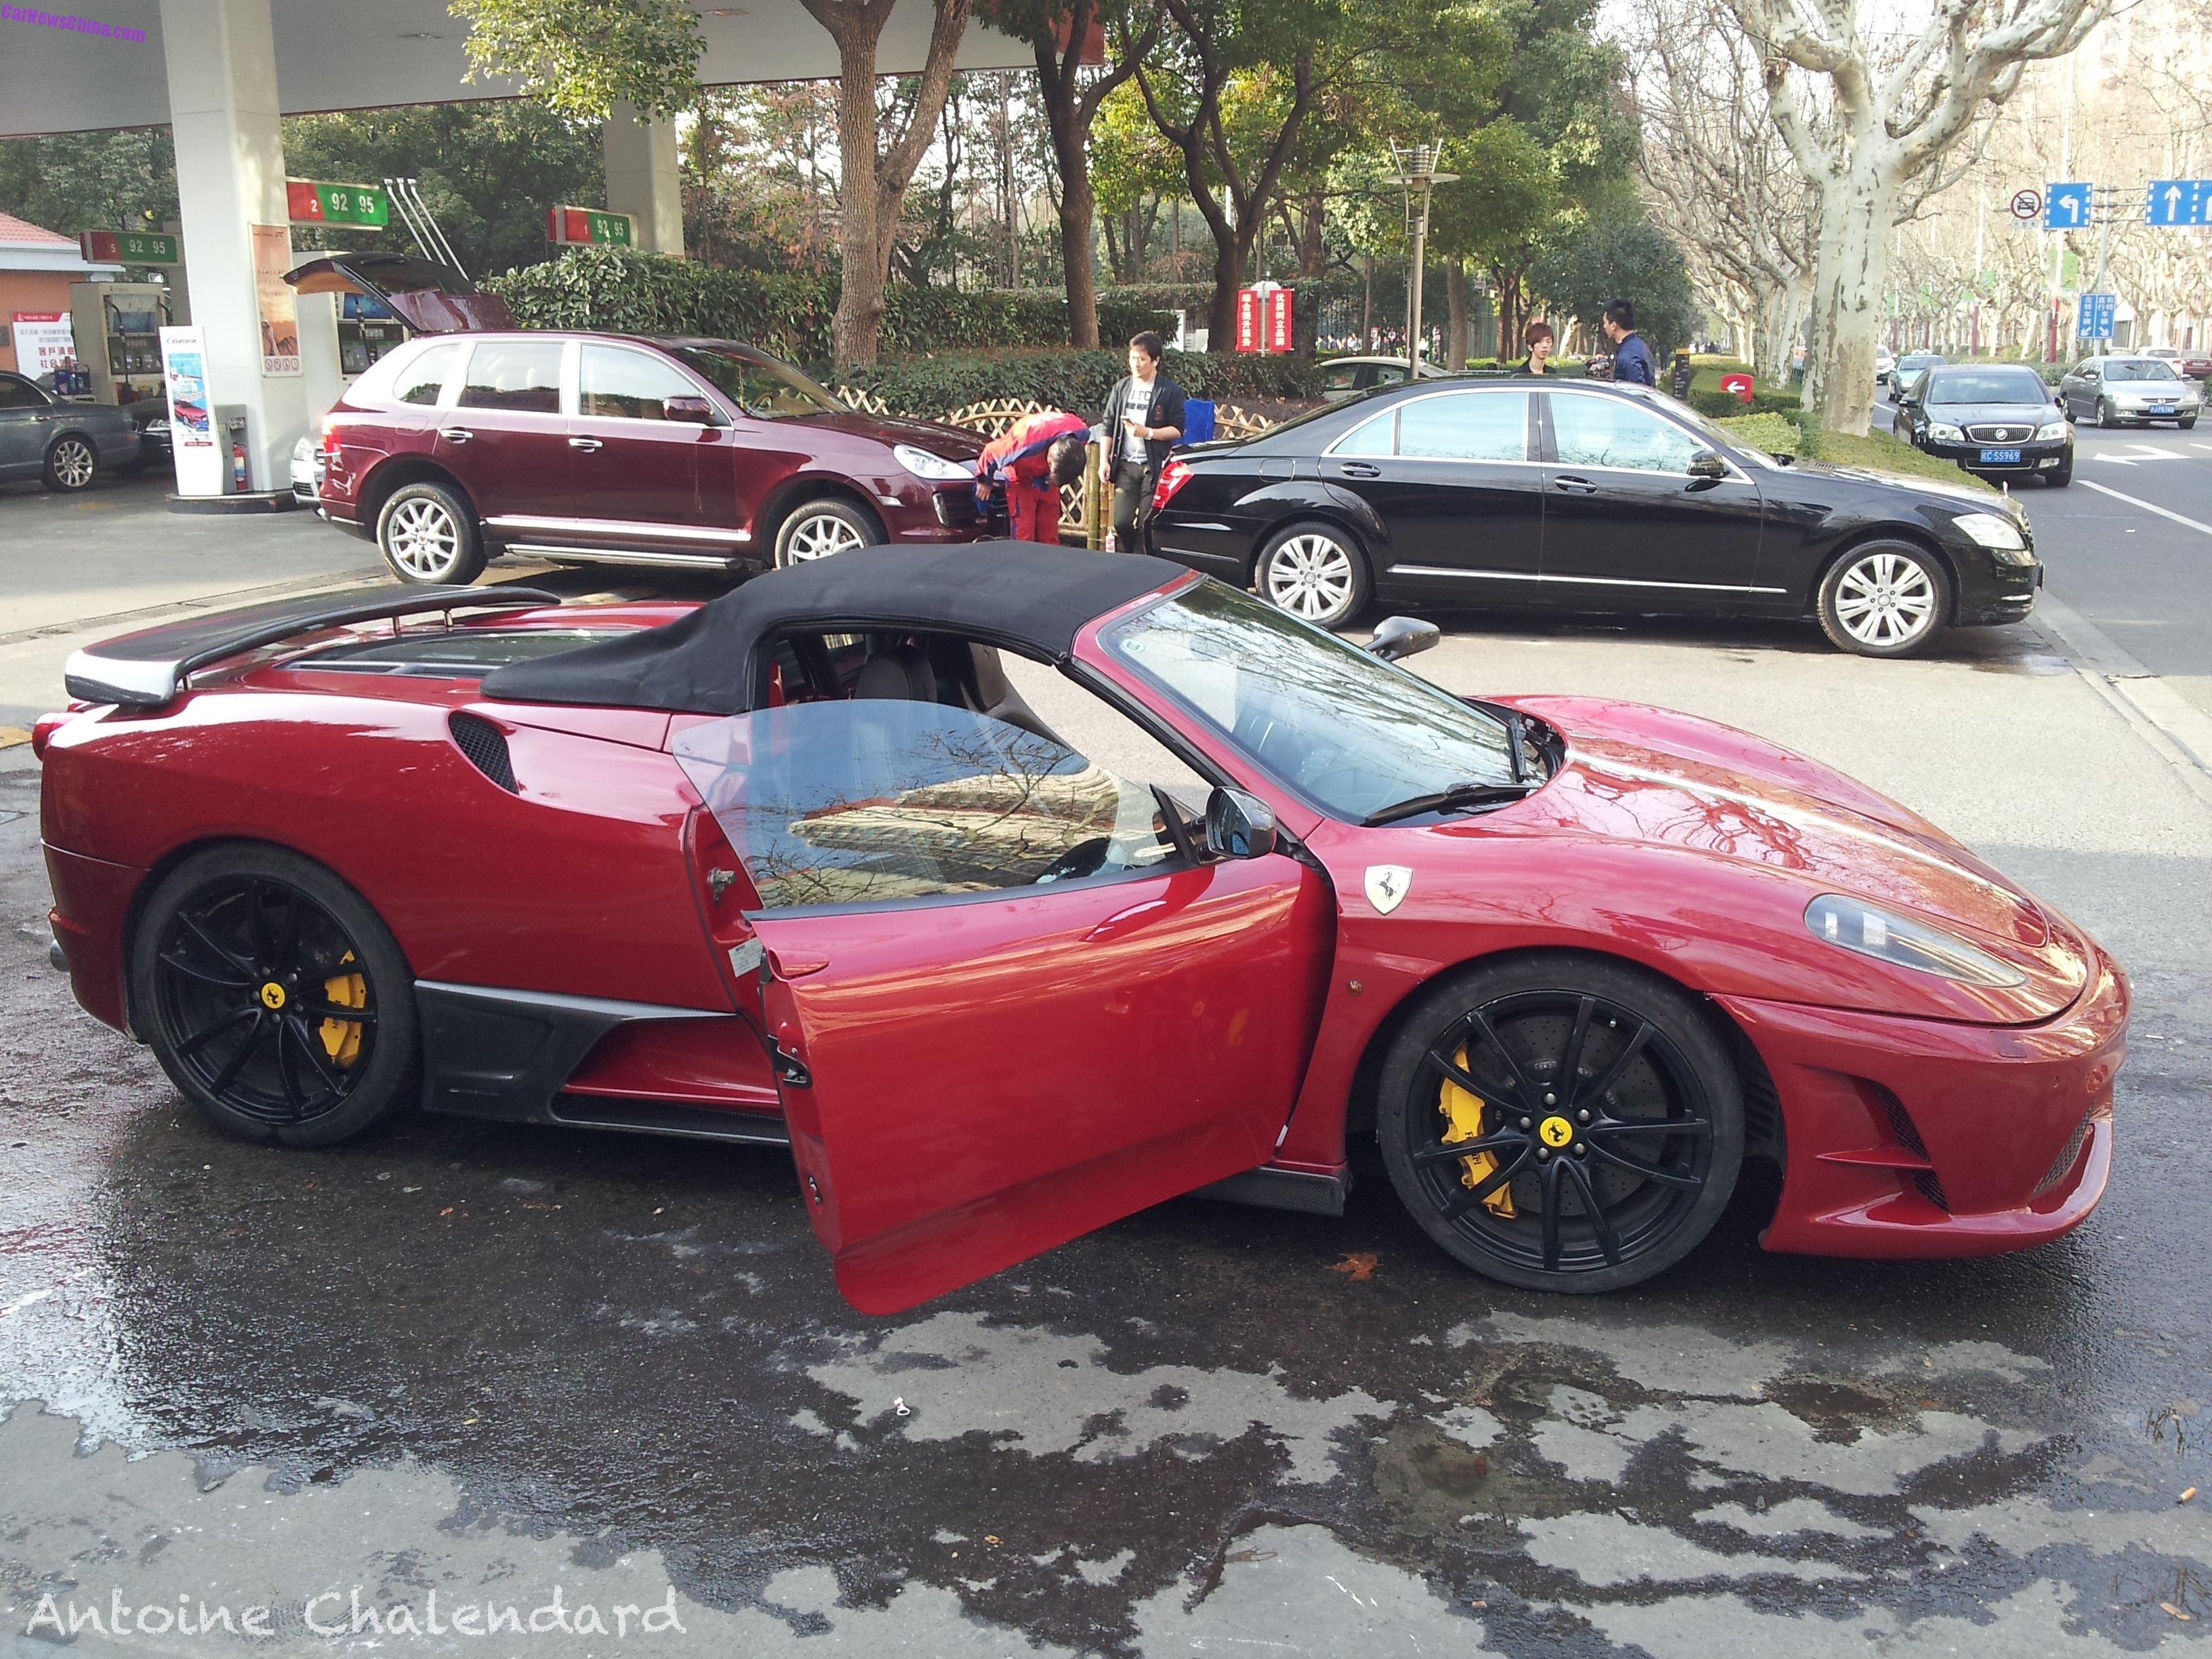 Marvelous Spotted In China: Ferrari F430 Scuderia Spider 16M